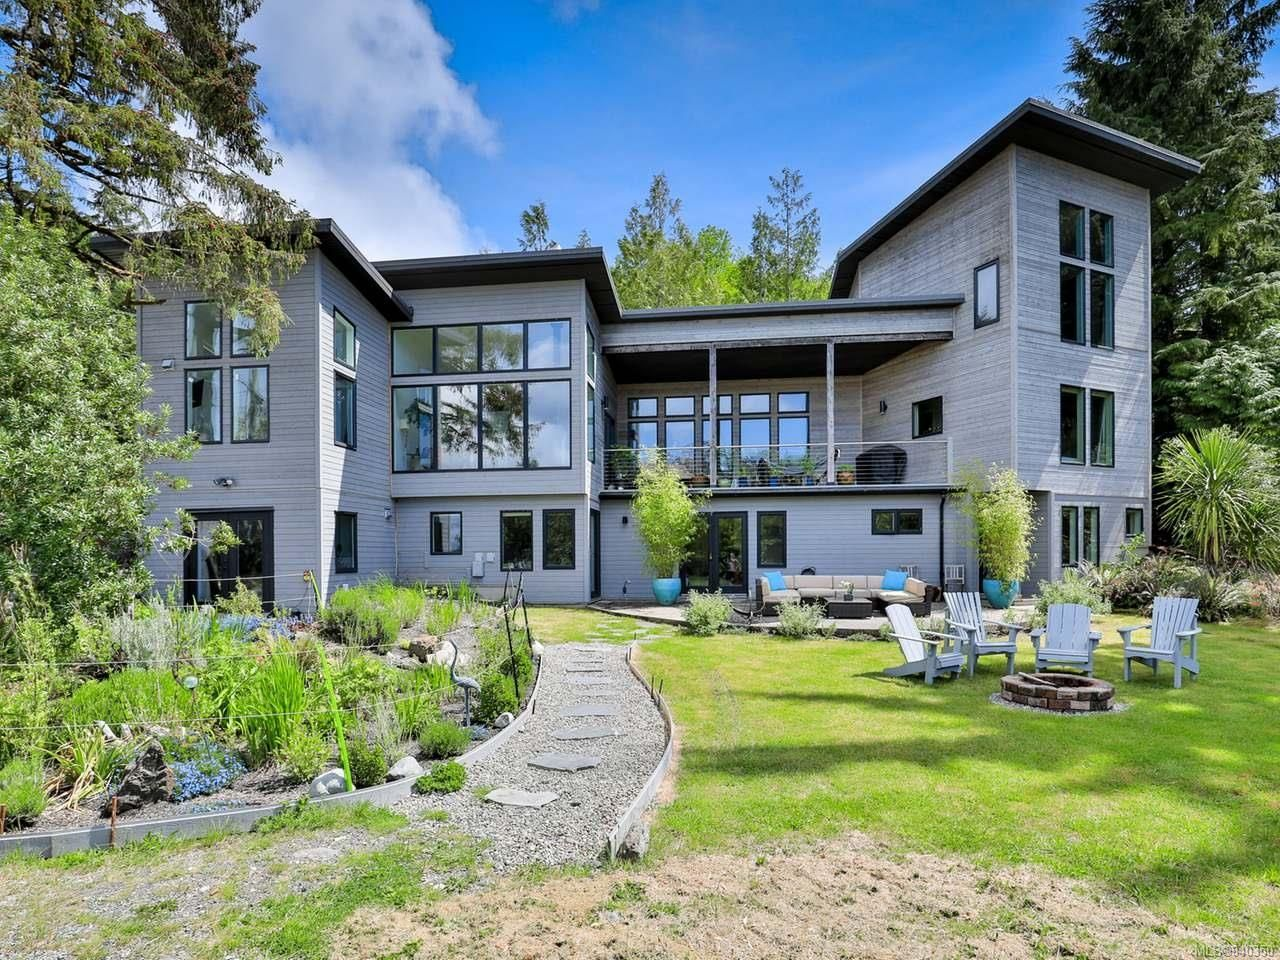 Photo 63: Photos: 1068 Helen Rd in UCLUELET: PA Ucluelet House for sale (Port Alberni)  : MLS®# 840350